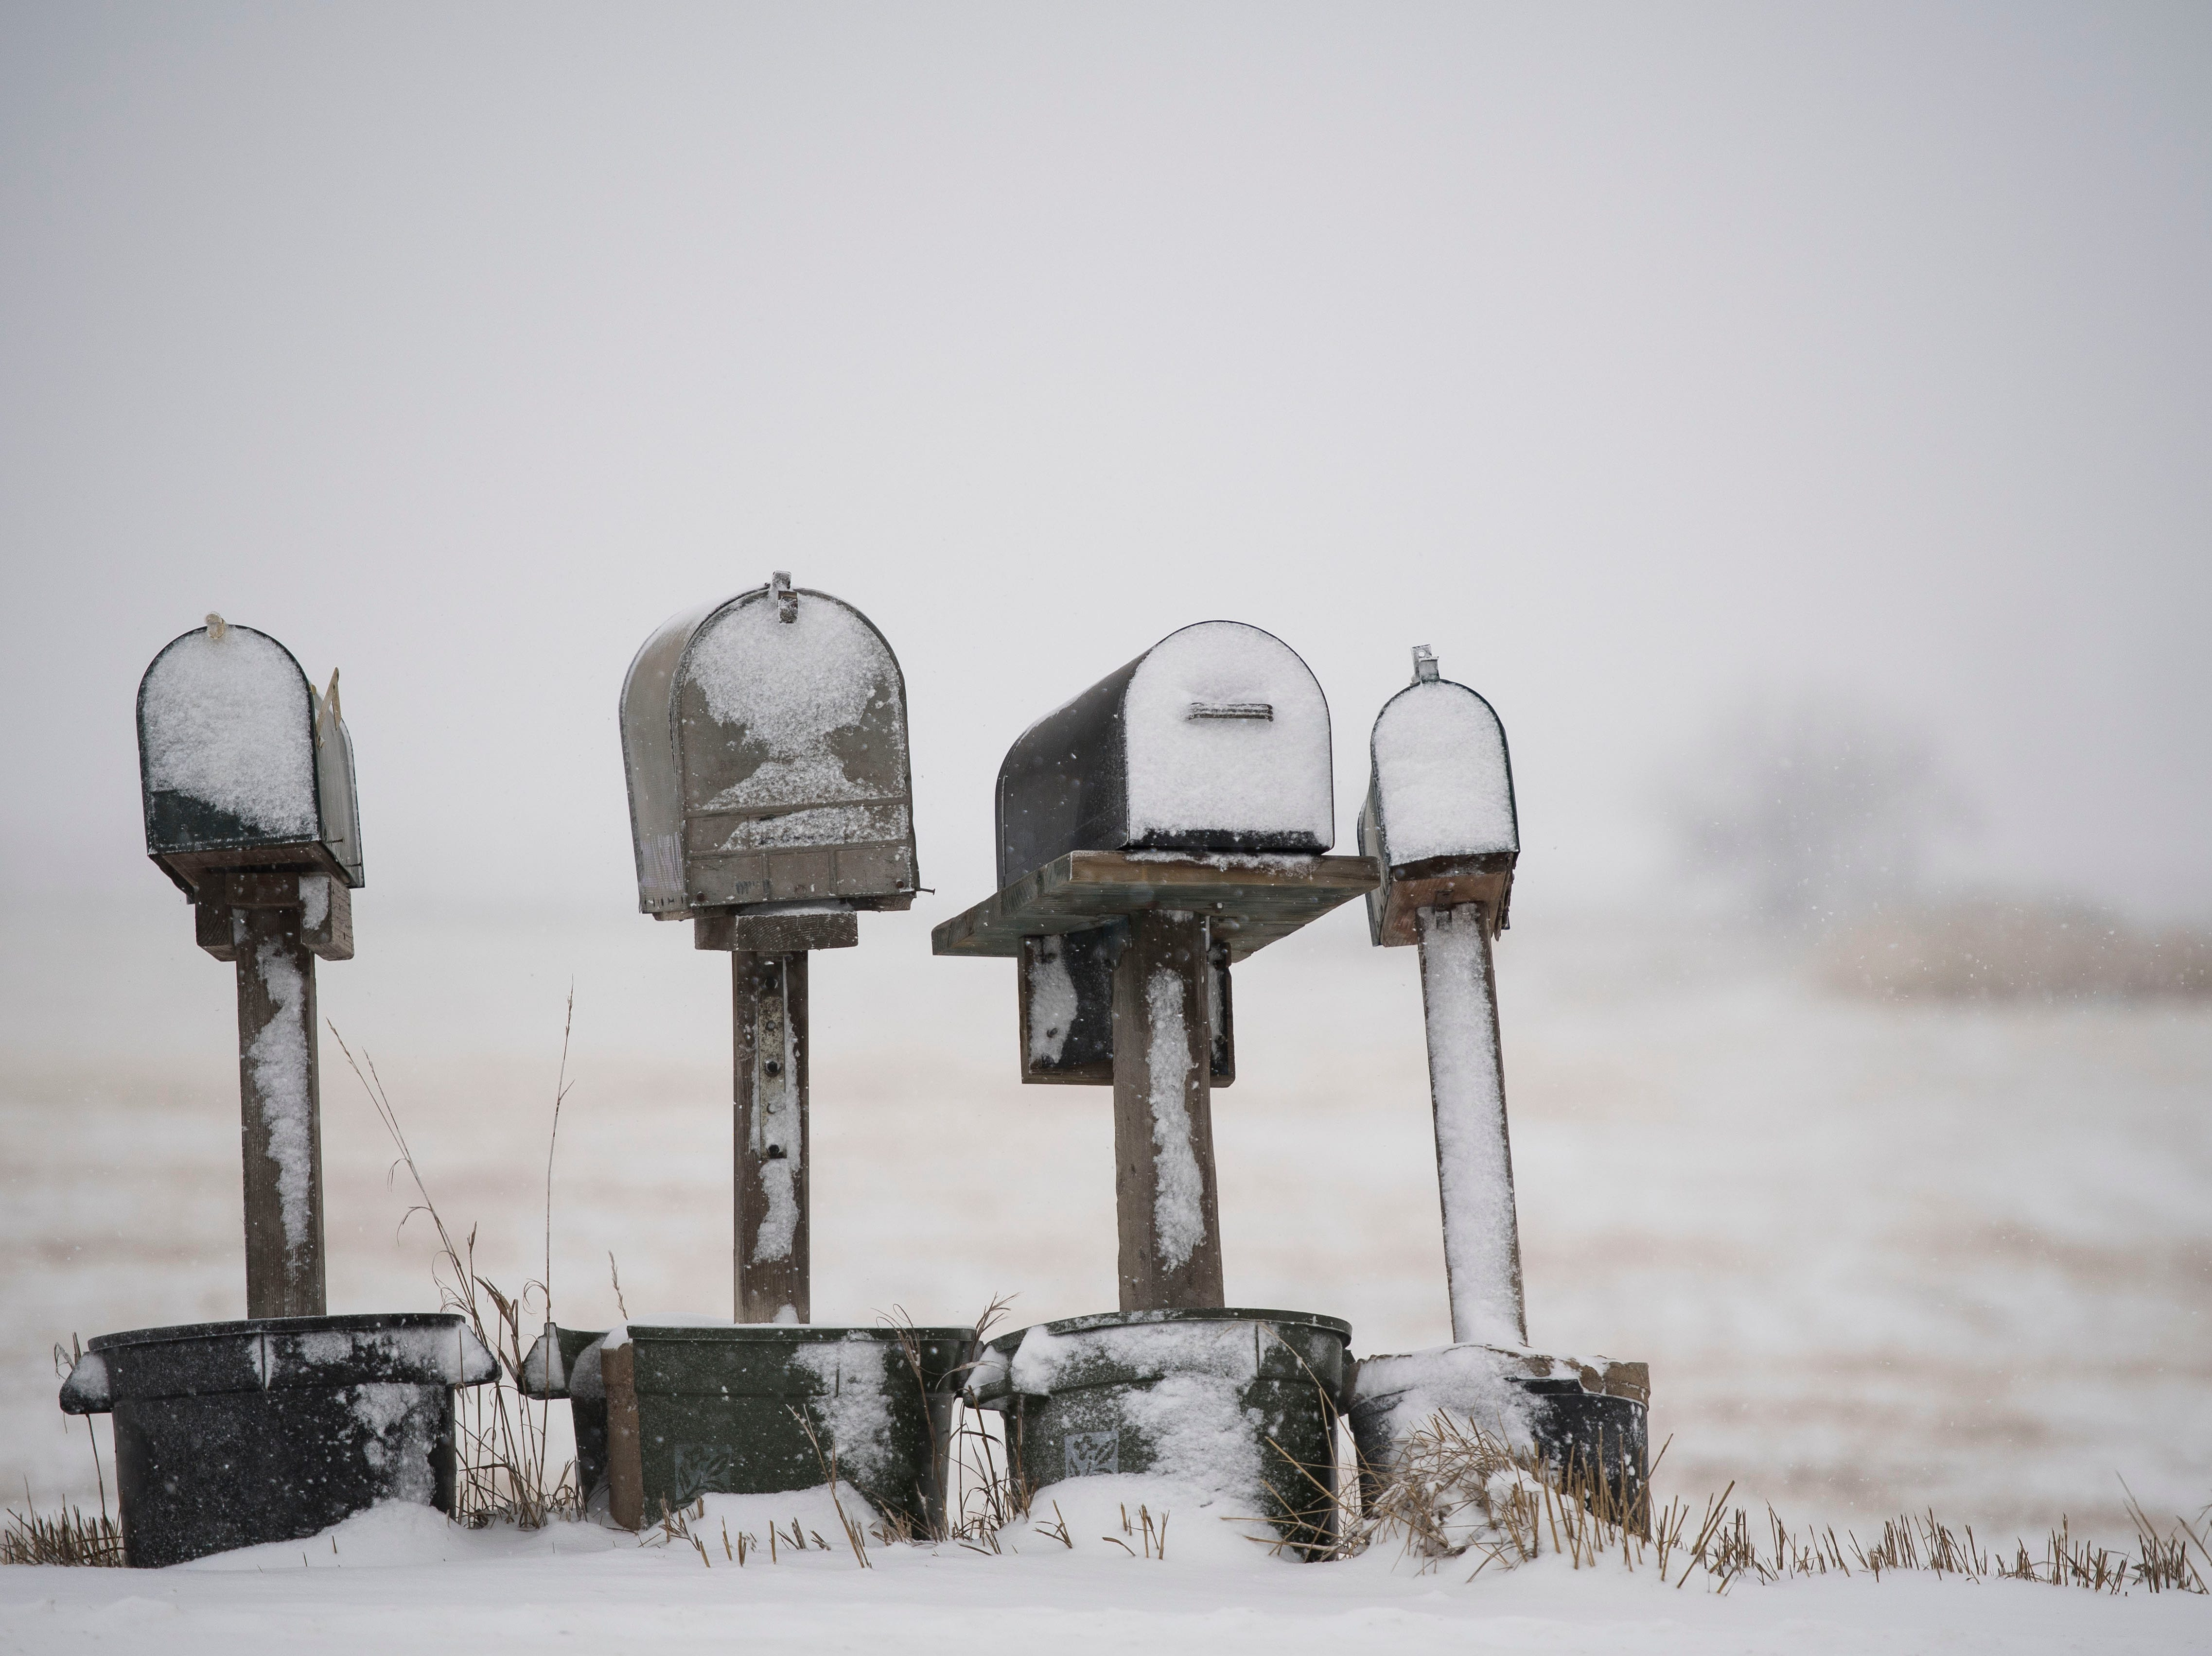 Mailboxes begin to collect snow during a snowstorm on Wednesday, Feb. 6, 2019, in Fort Collins, Colo.